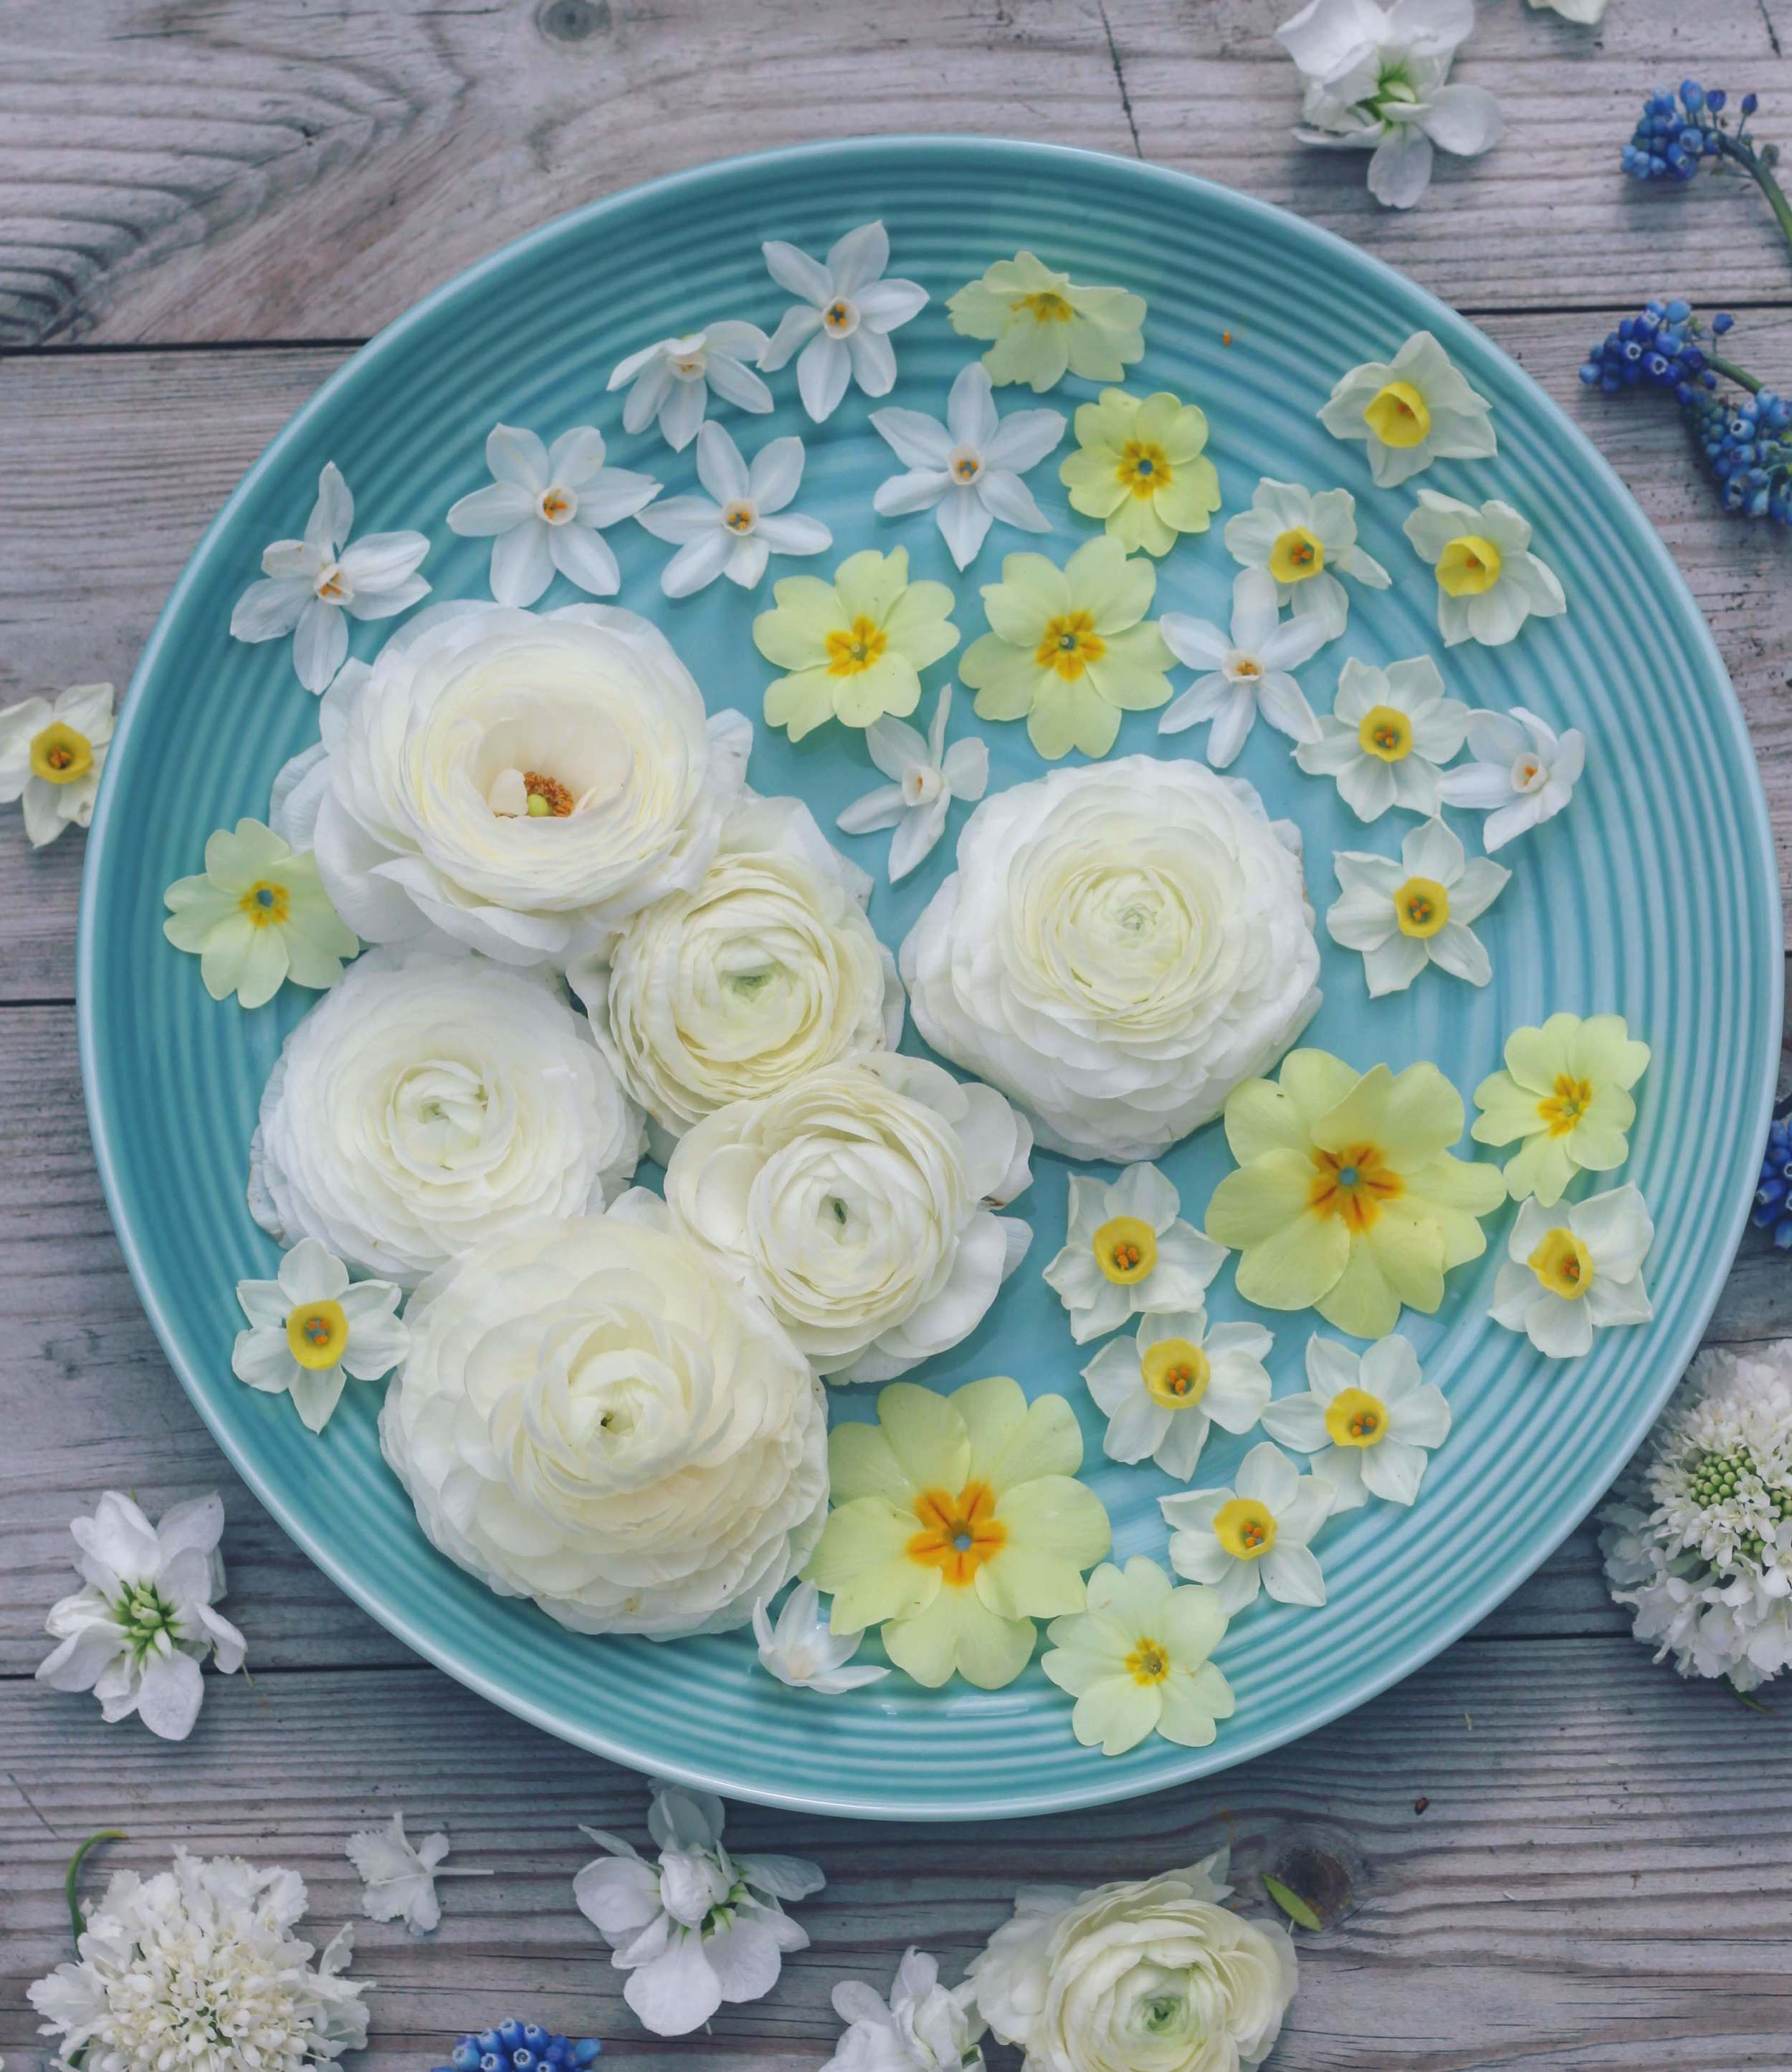 Easter Flatlay By Jennifer Pinder with Easter biscuits and delicate spring flowers. Inspiration for your Easter table setting and centerpieces with light and bright flowers in pink, blue, yellow and white. Biscuit recipe by the Biscuiteers.